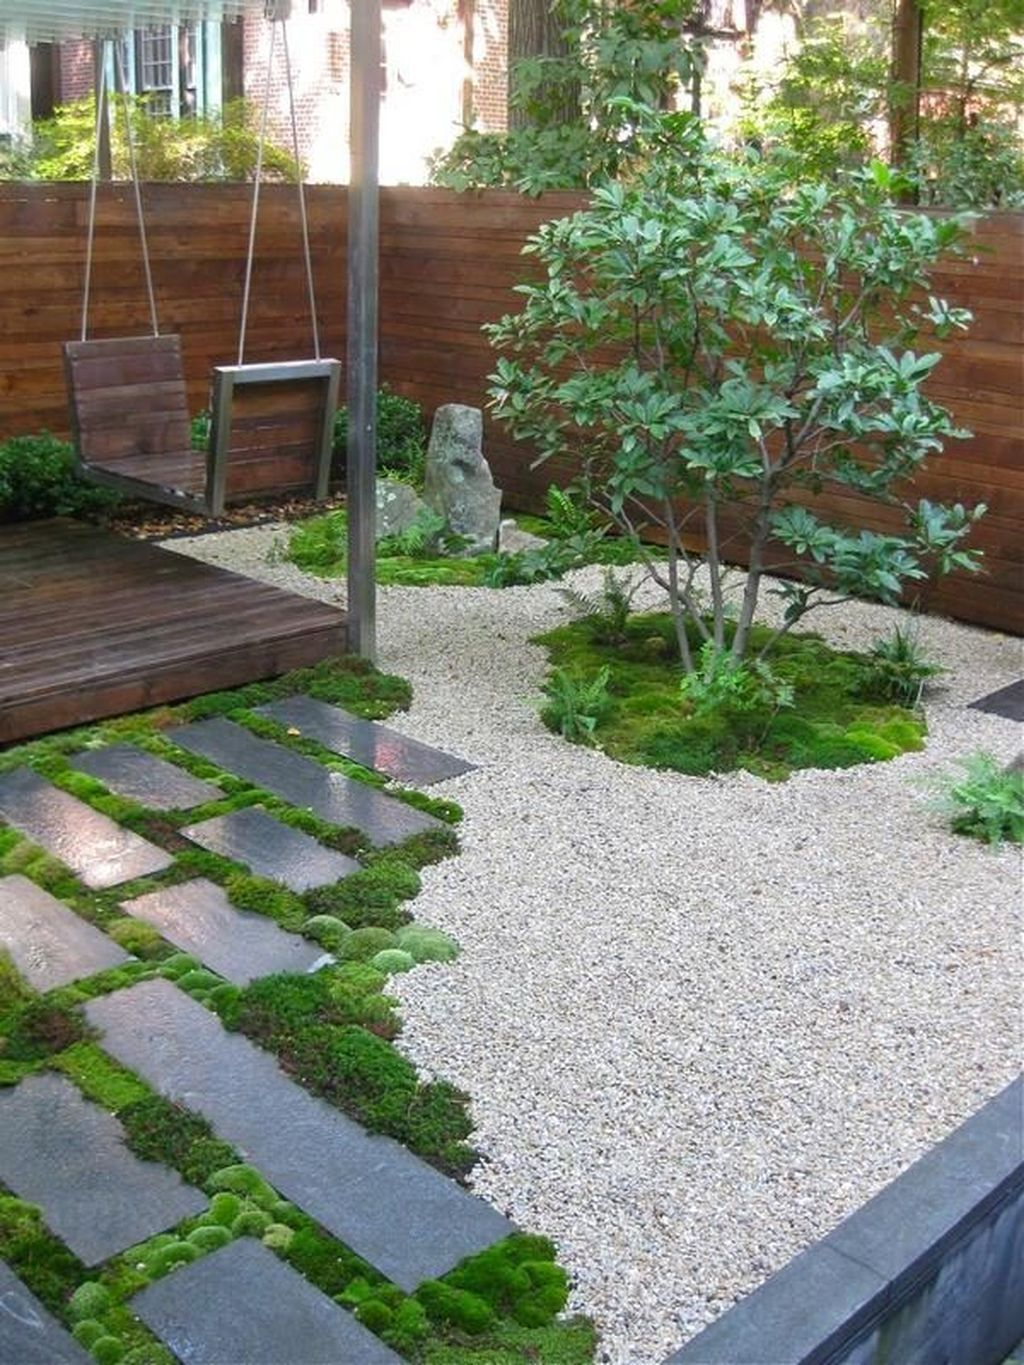 30 Wonderful Japanese Garden Ideas For Inspiration Trenduhome Small Japanese Garden Japanese Garden Japanese Garden Design